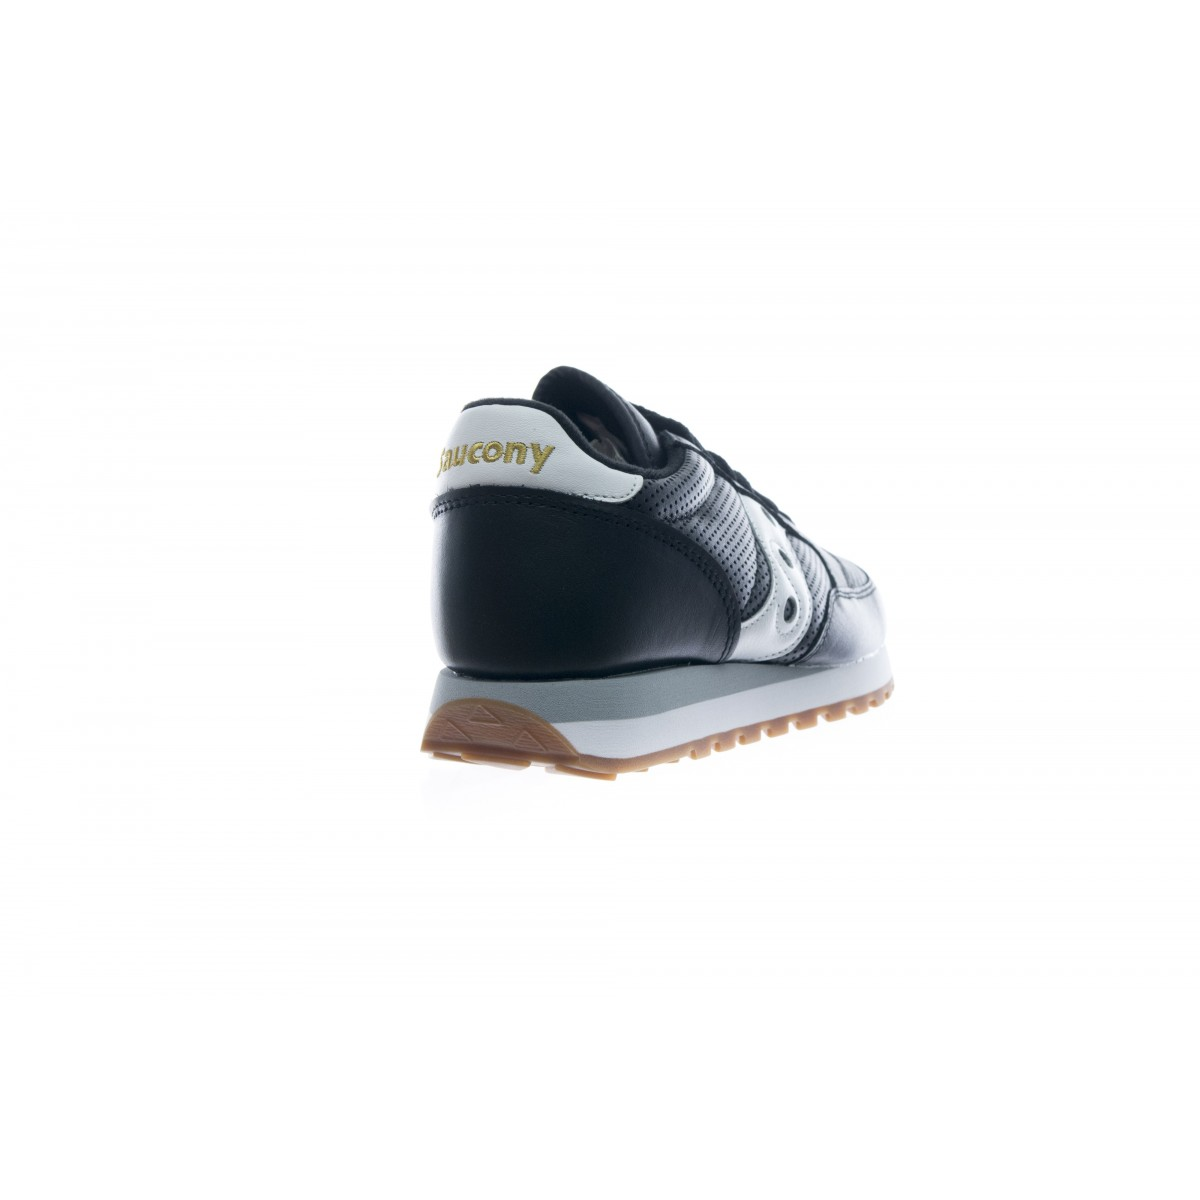 Scarpa - 70461 luxury leather limited